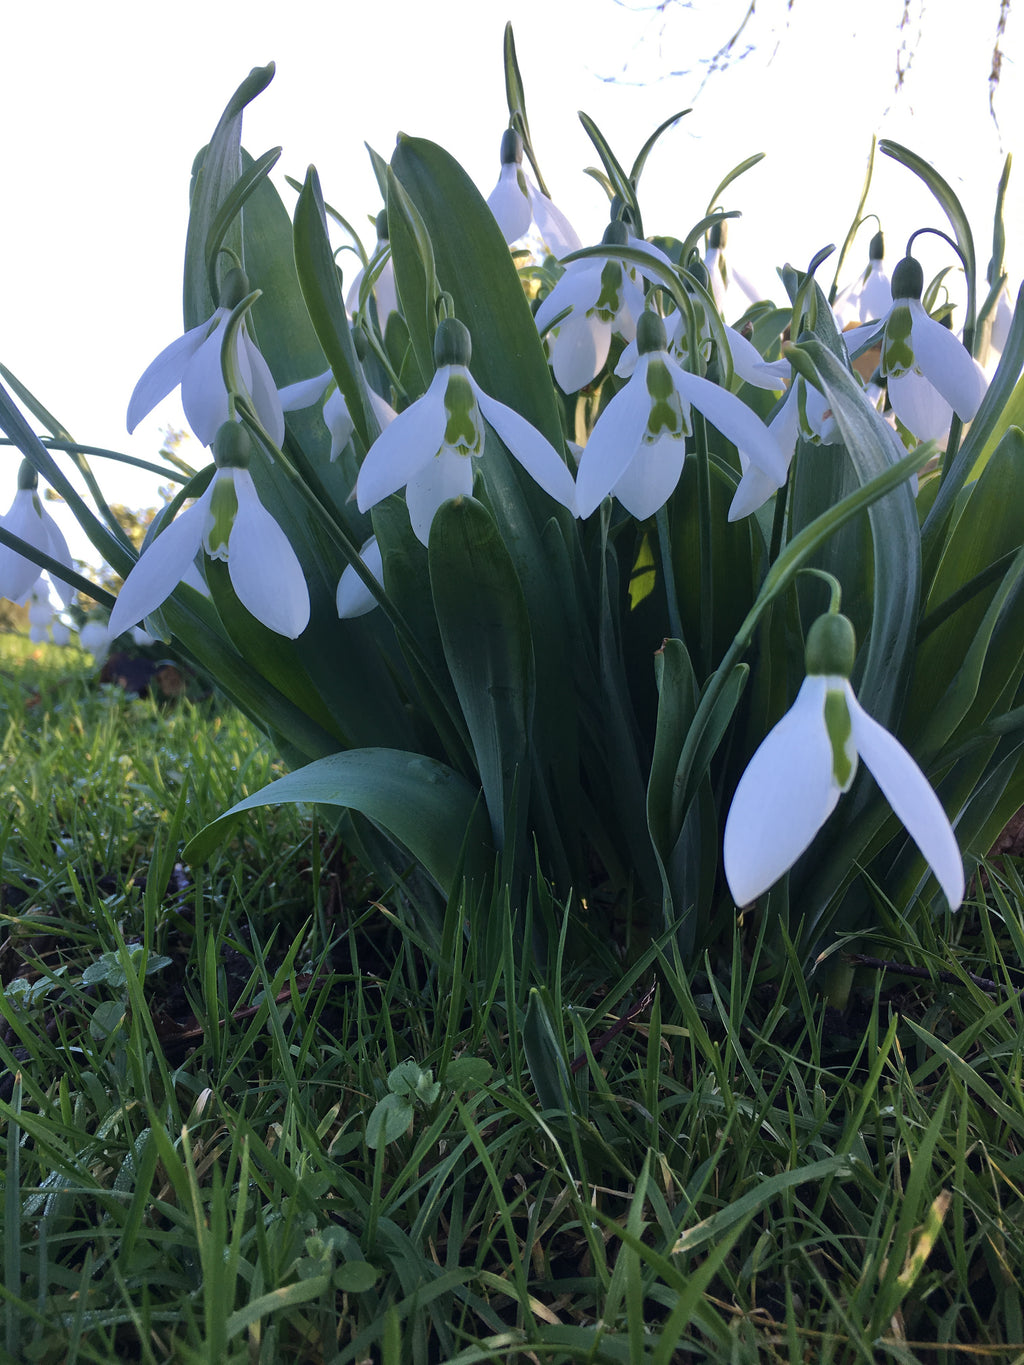 10 x Snowdrop Bulbs - Single Flowering (Free Shipping UK)